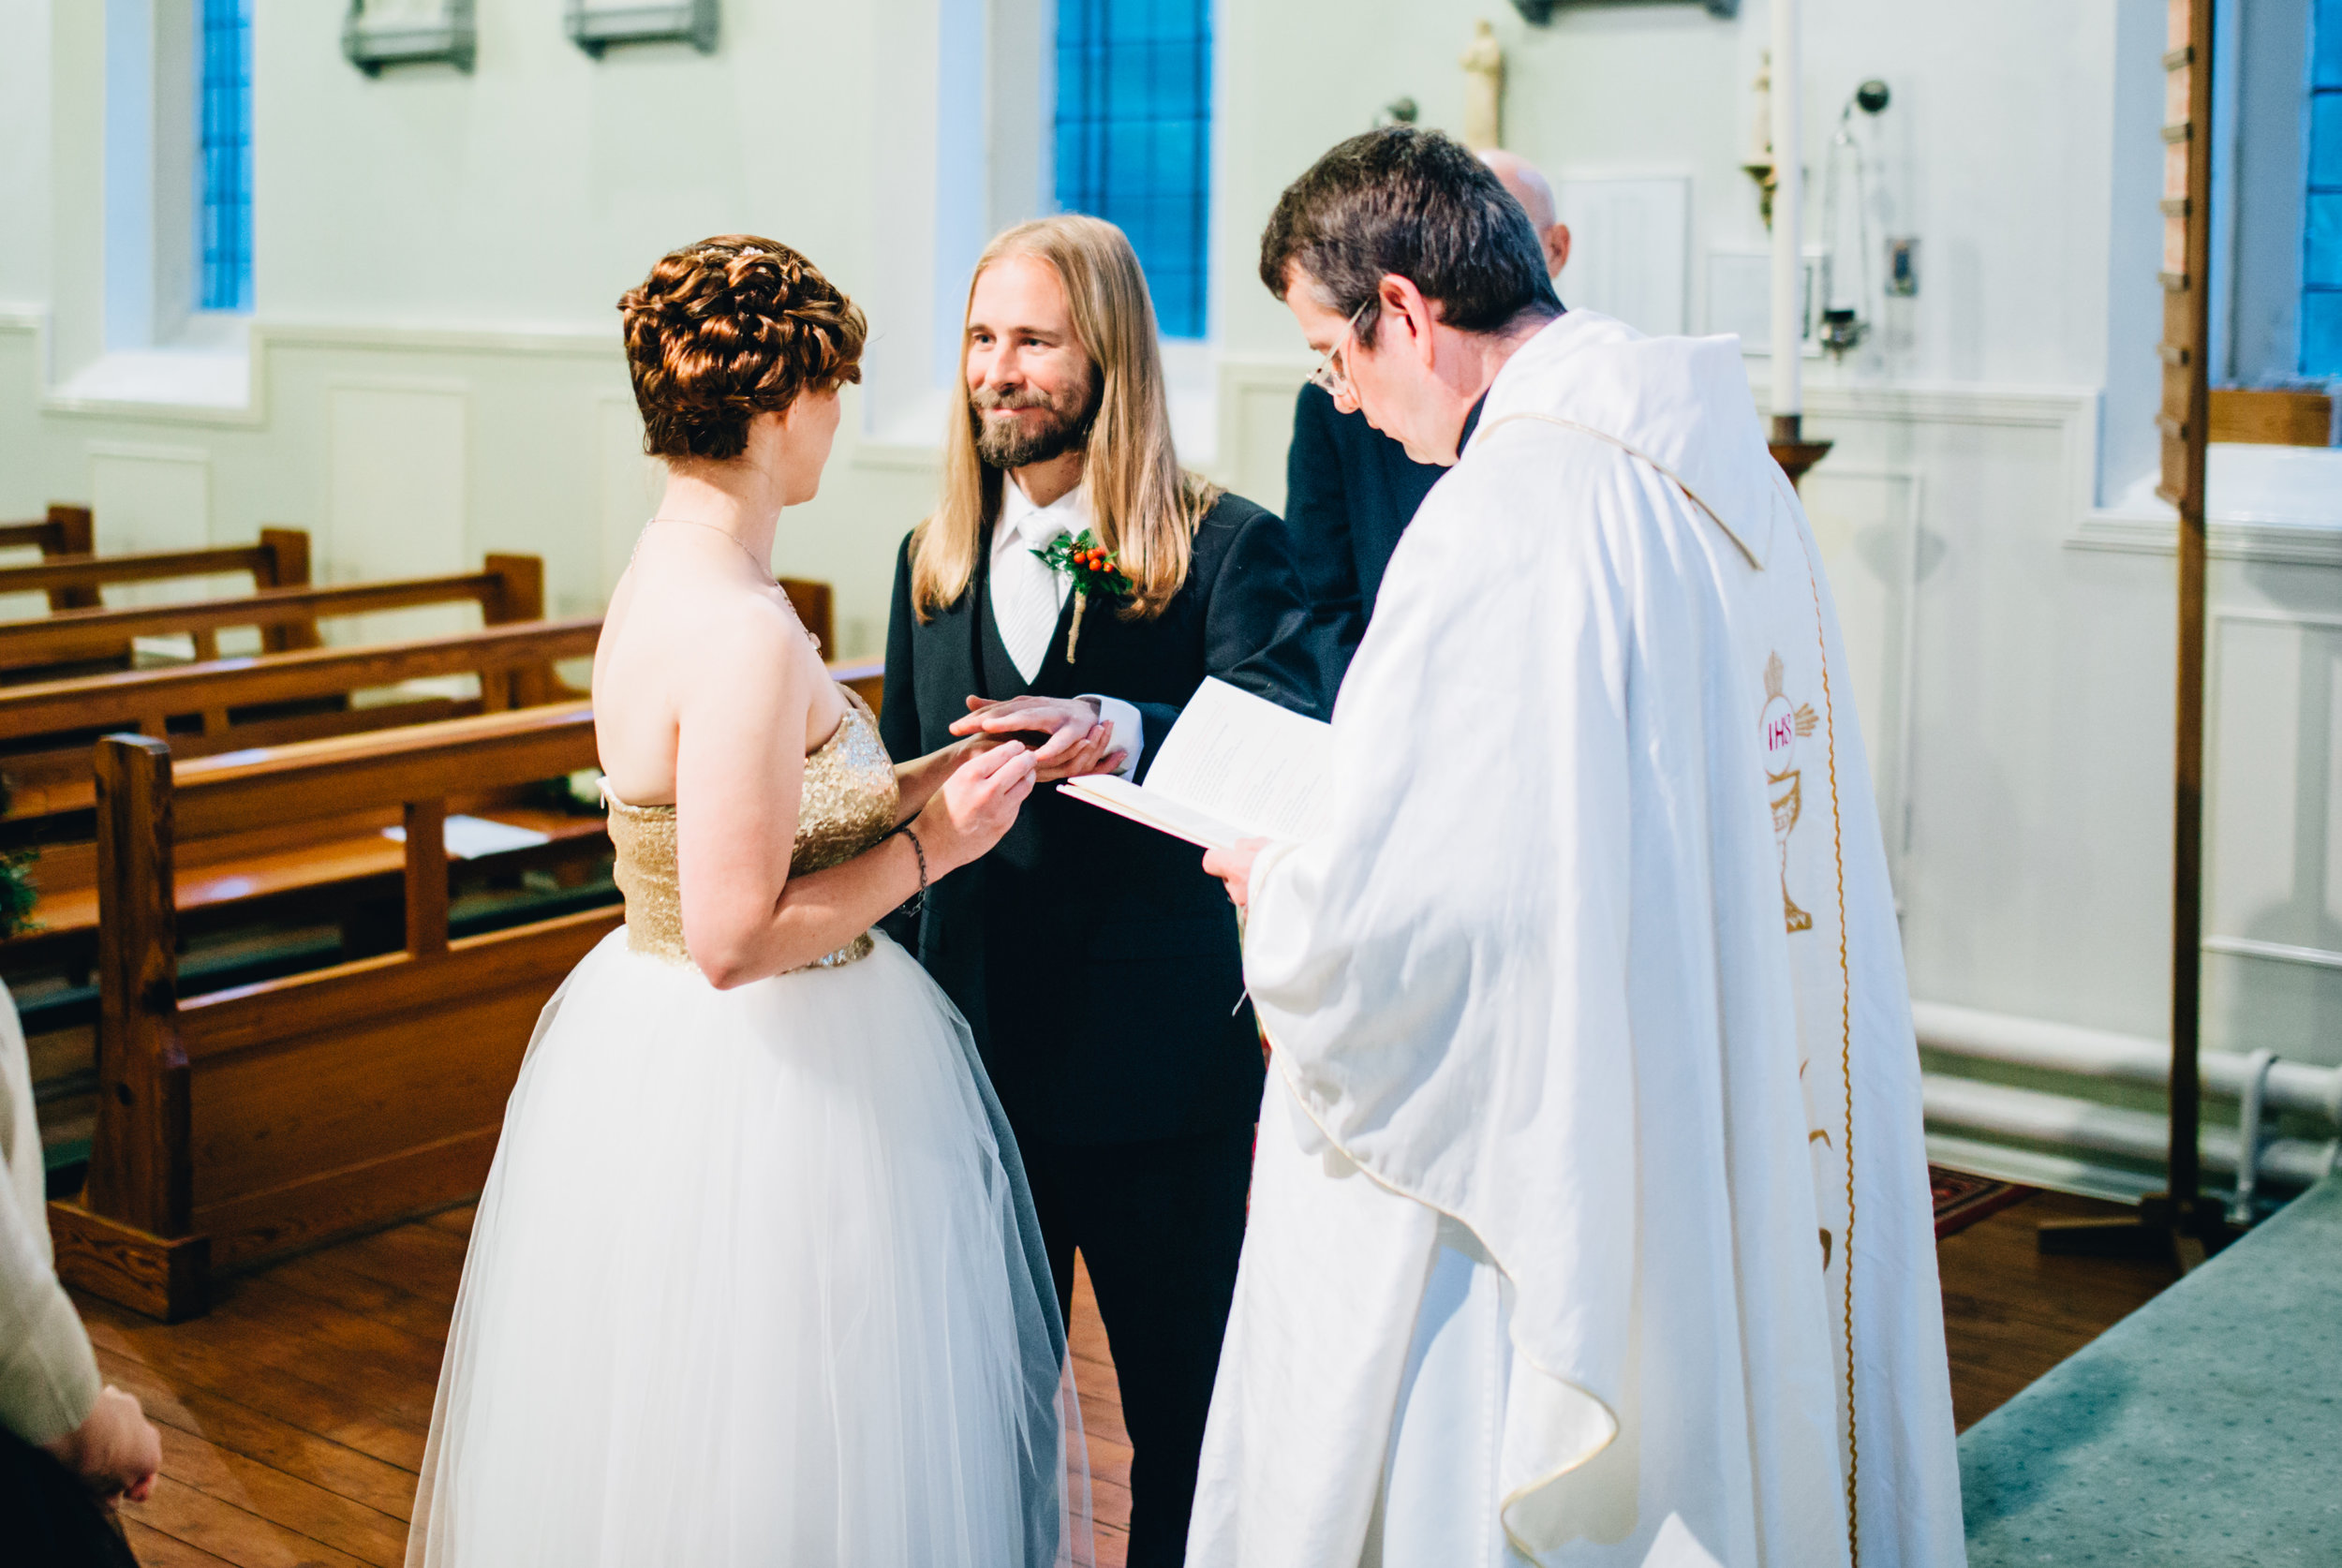 exchanging vows - yorkshire wedding